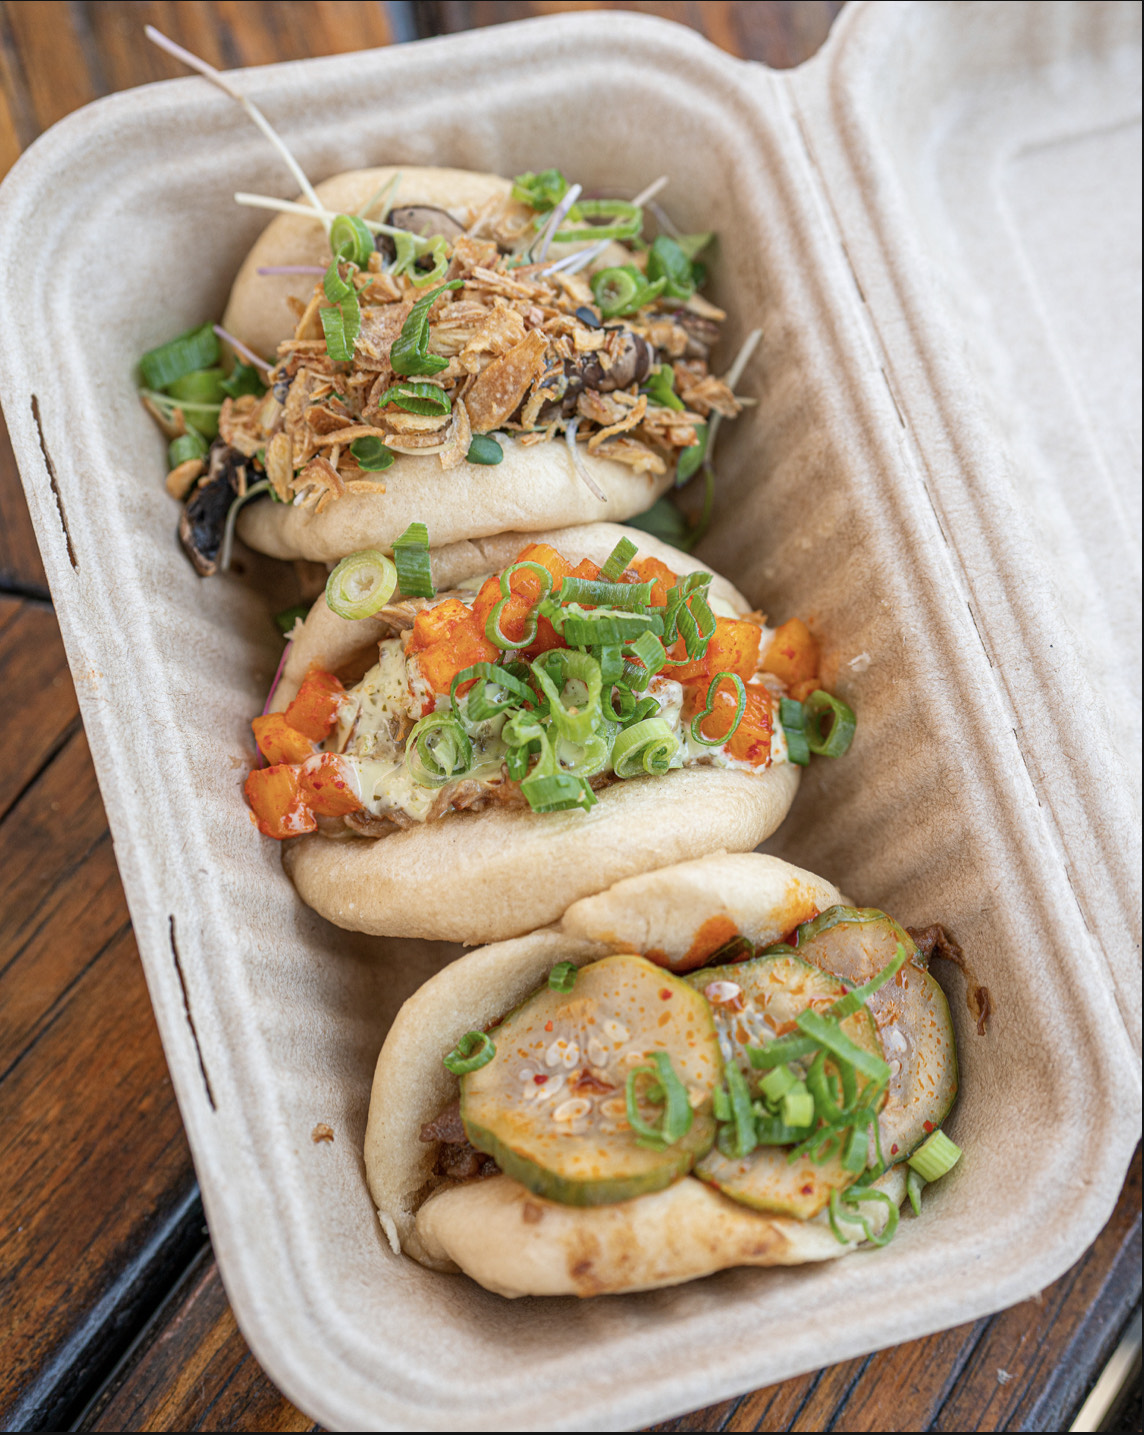 A takeout tray with mushroom, pork belly, and Korean barbecue beef buns from Bun's Up.